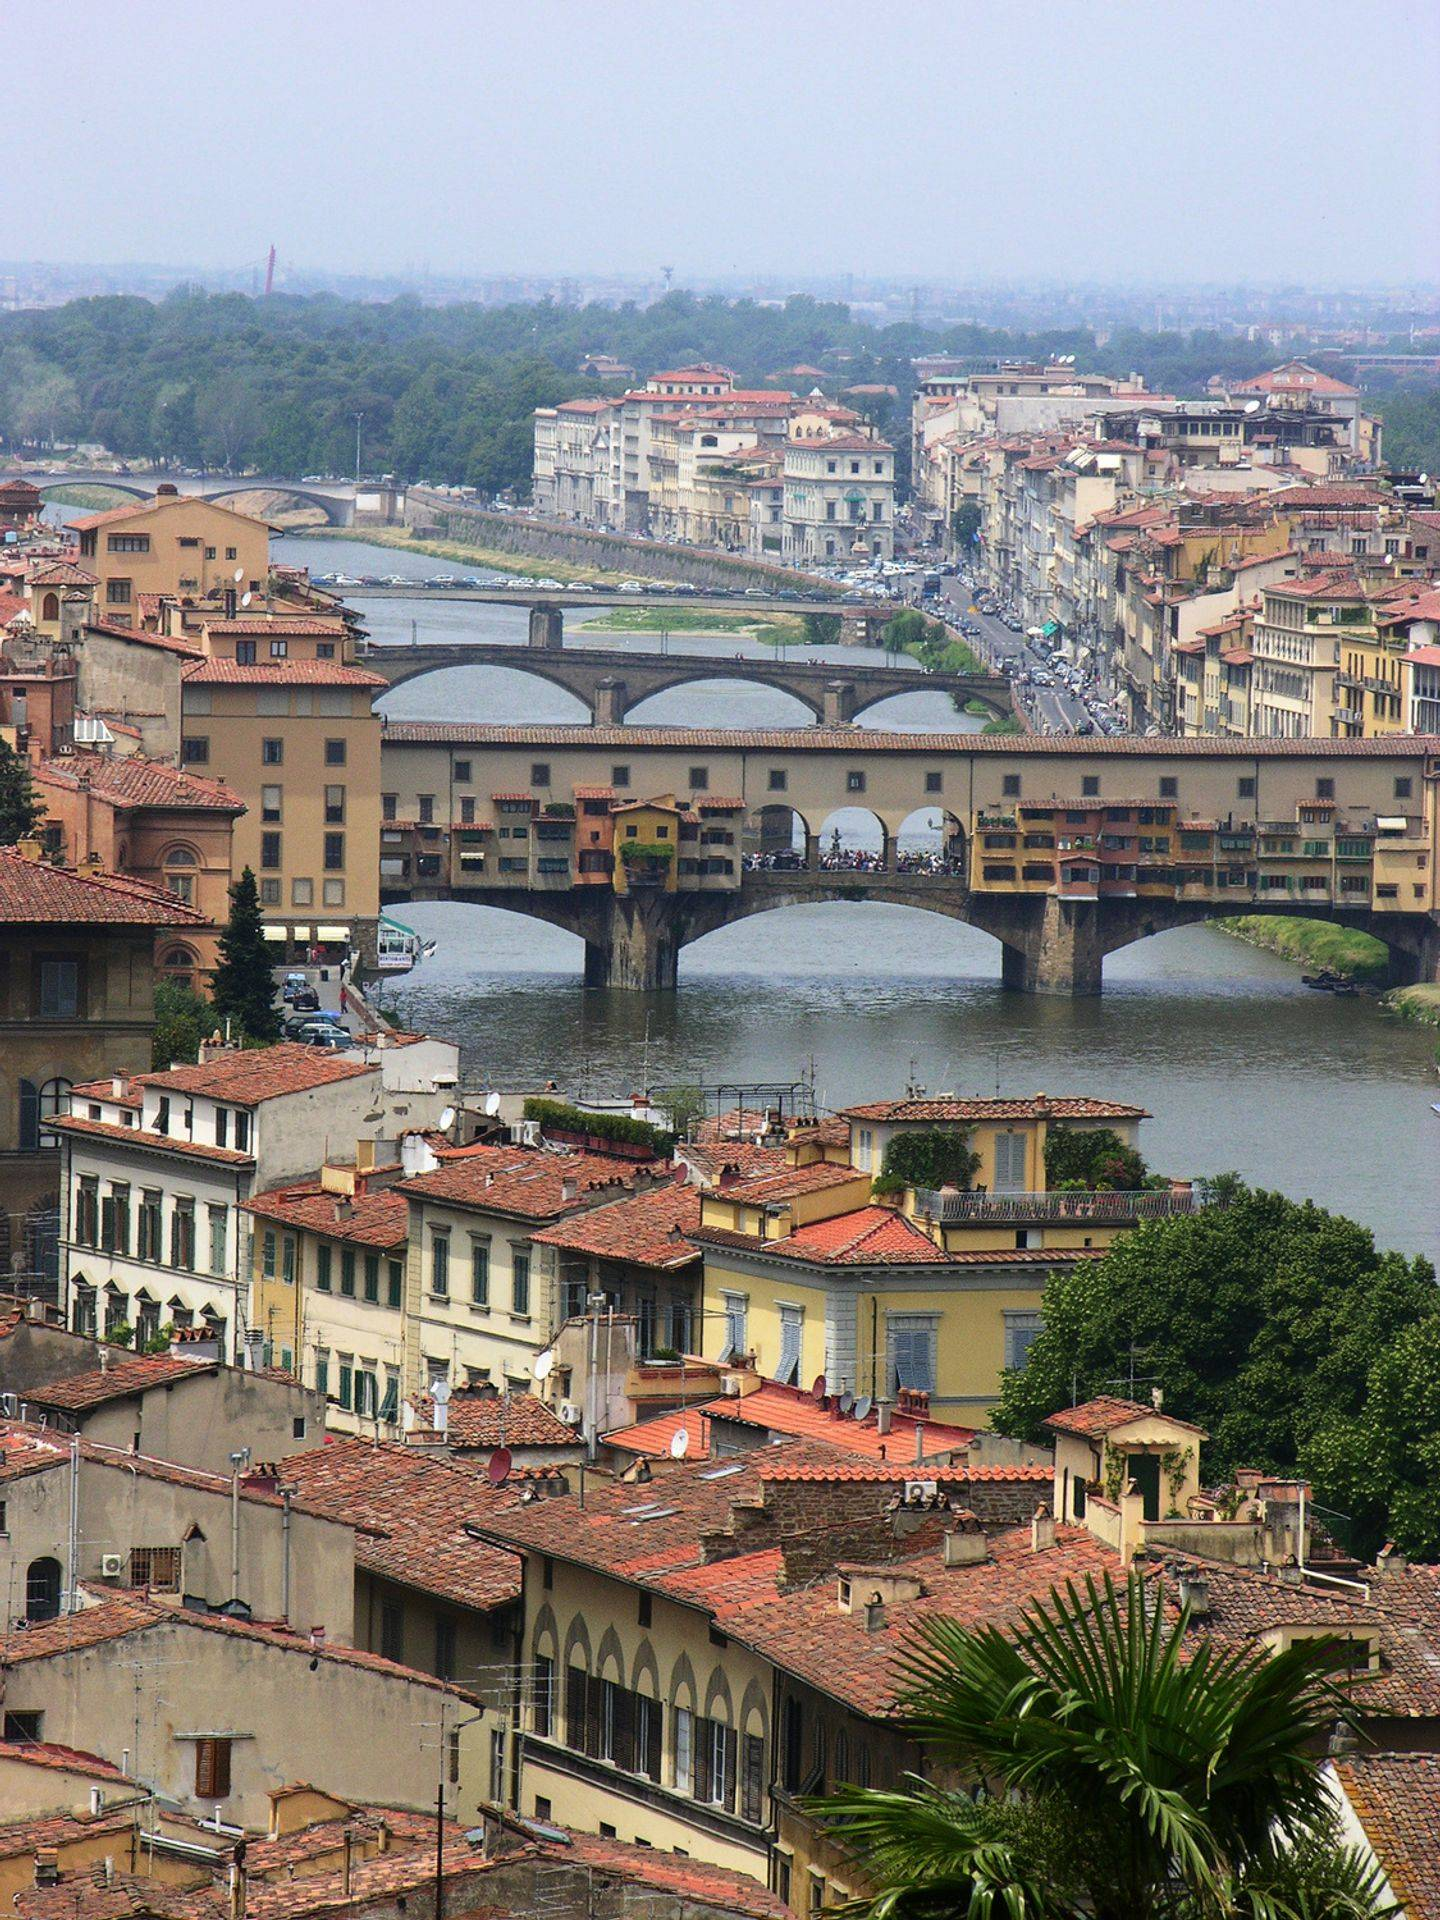 learn all aspects of the Italian culture through art and history Ponte Vecchio in Florence